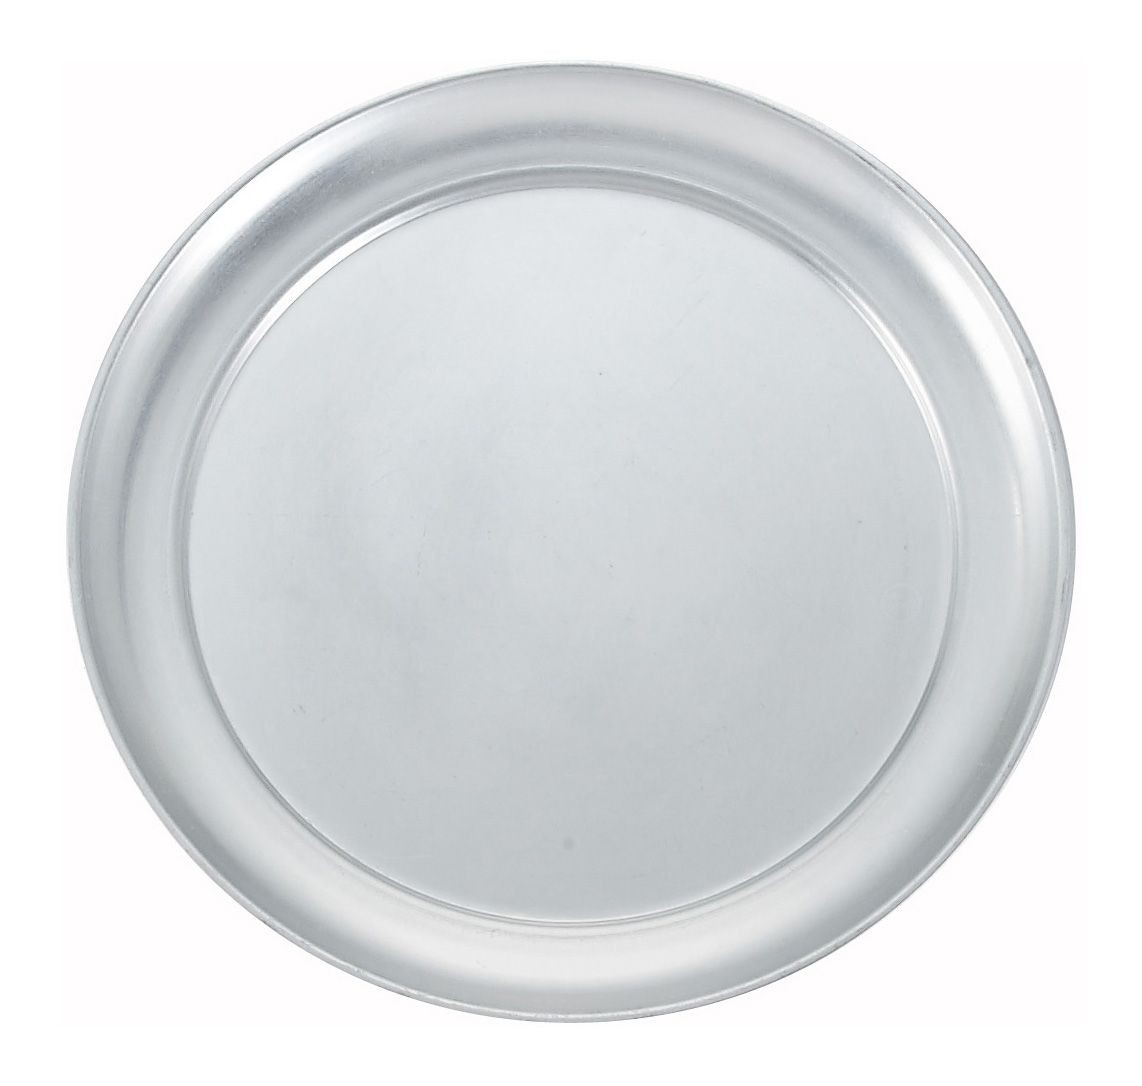 "Winco APZT-10 10"" Aluminum Wide Rim Pizza Pan"